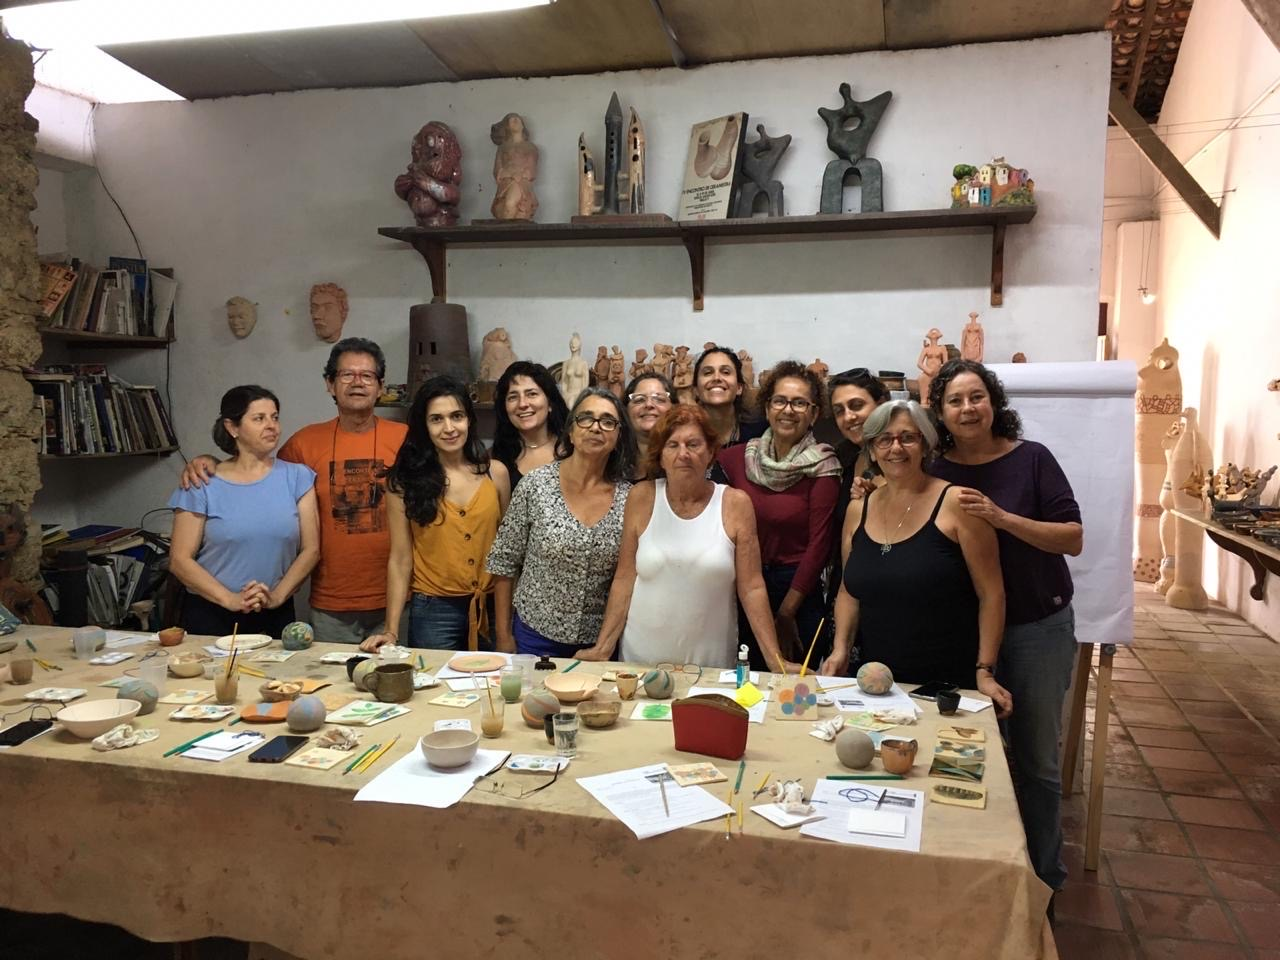 workshop de Aquarela no atelier de Dalcir Ramiro - Paraty